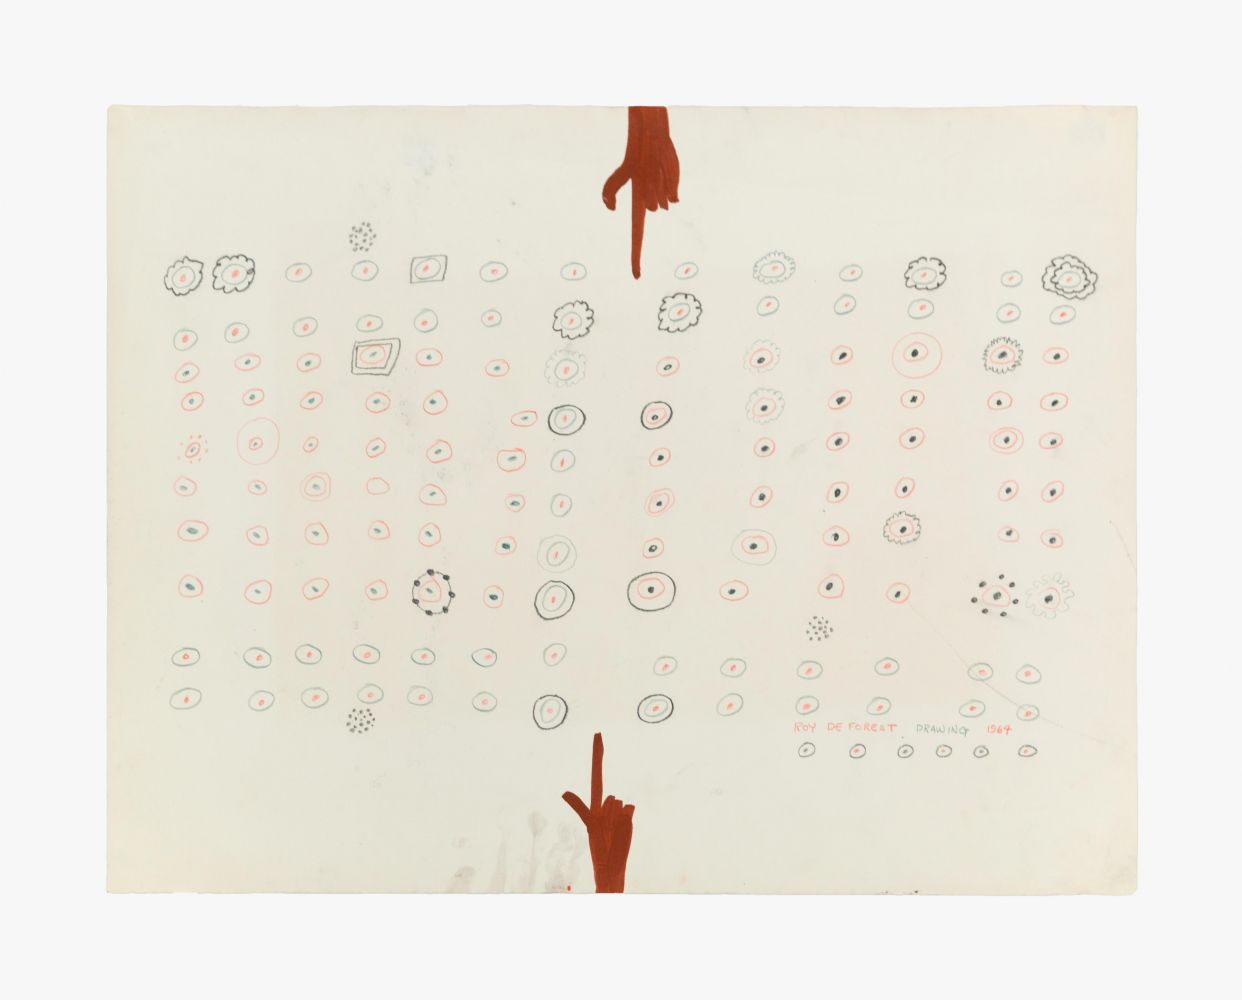 Roy De Forest Drawing, 1964